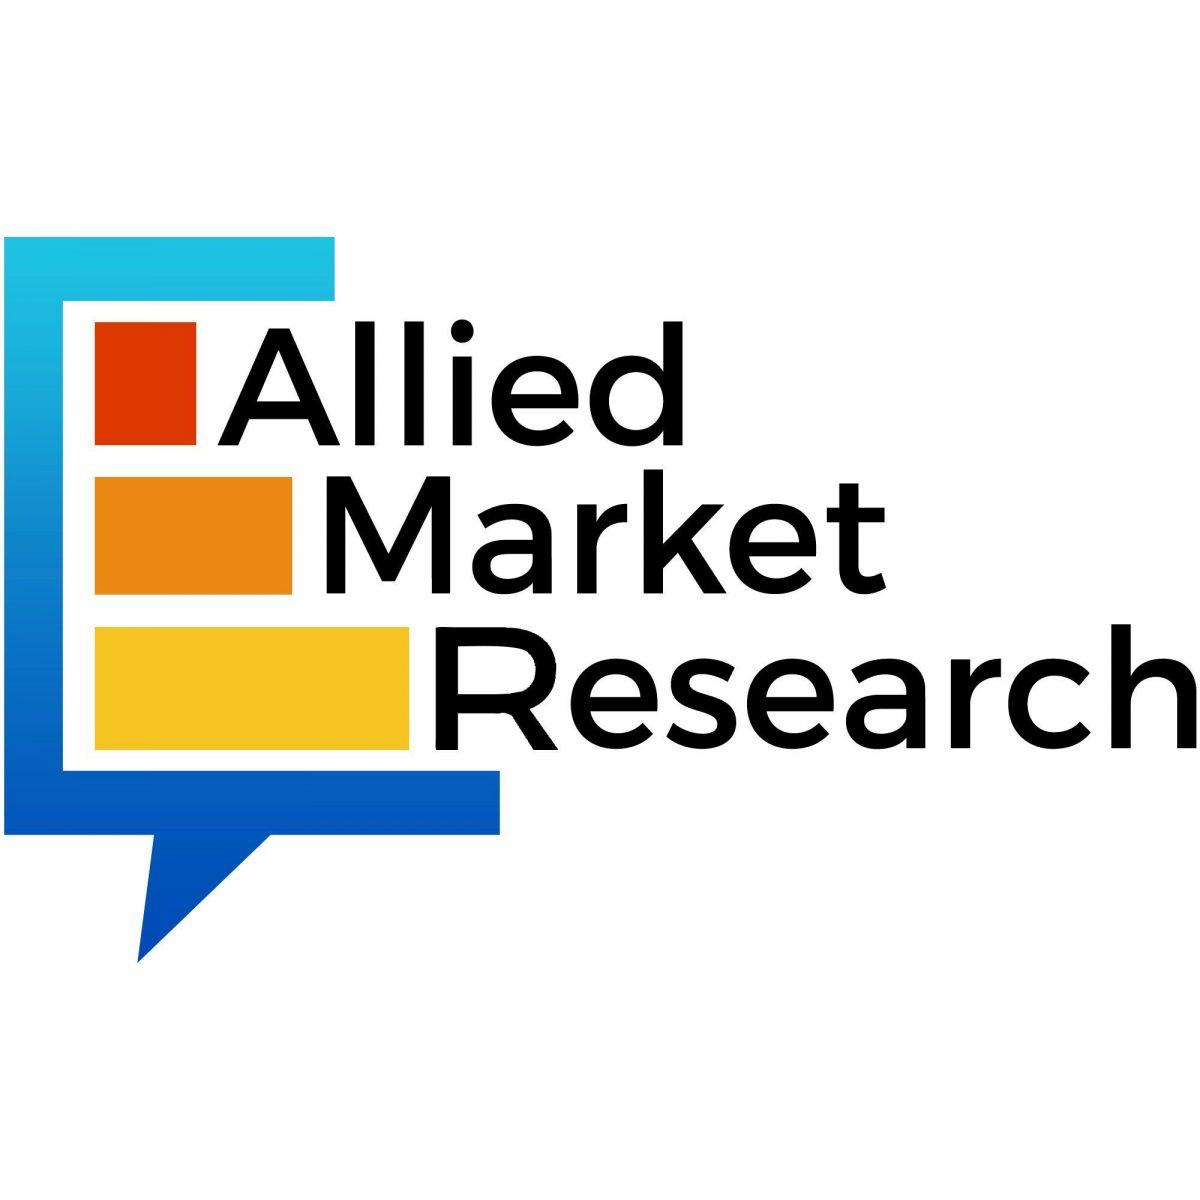 Passenger Car Accessories Aftermarket worth $248.41 Bn, Globally, by 2026 at 8.5% CAGR: Allied Market Research